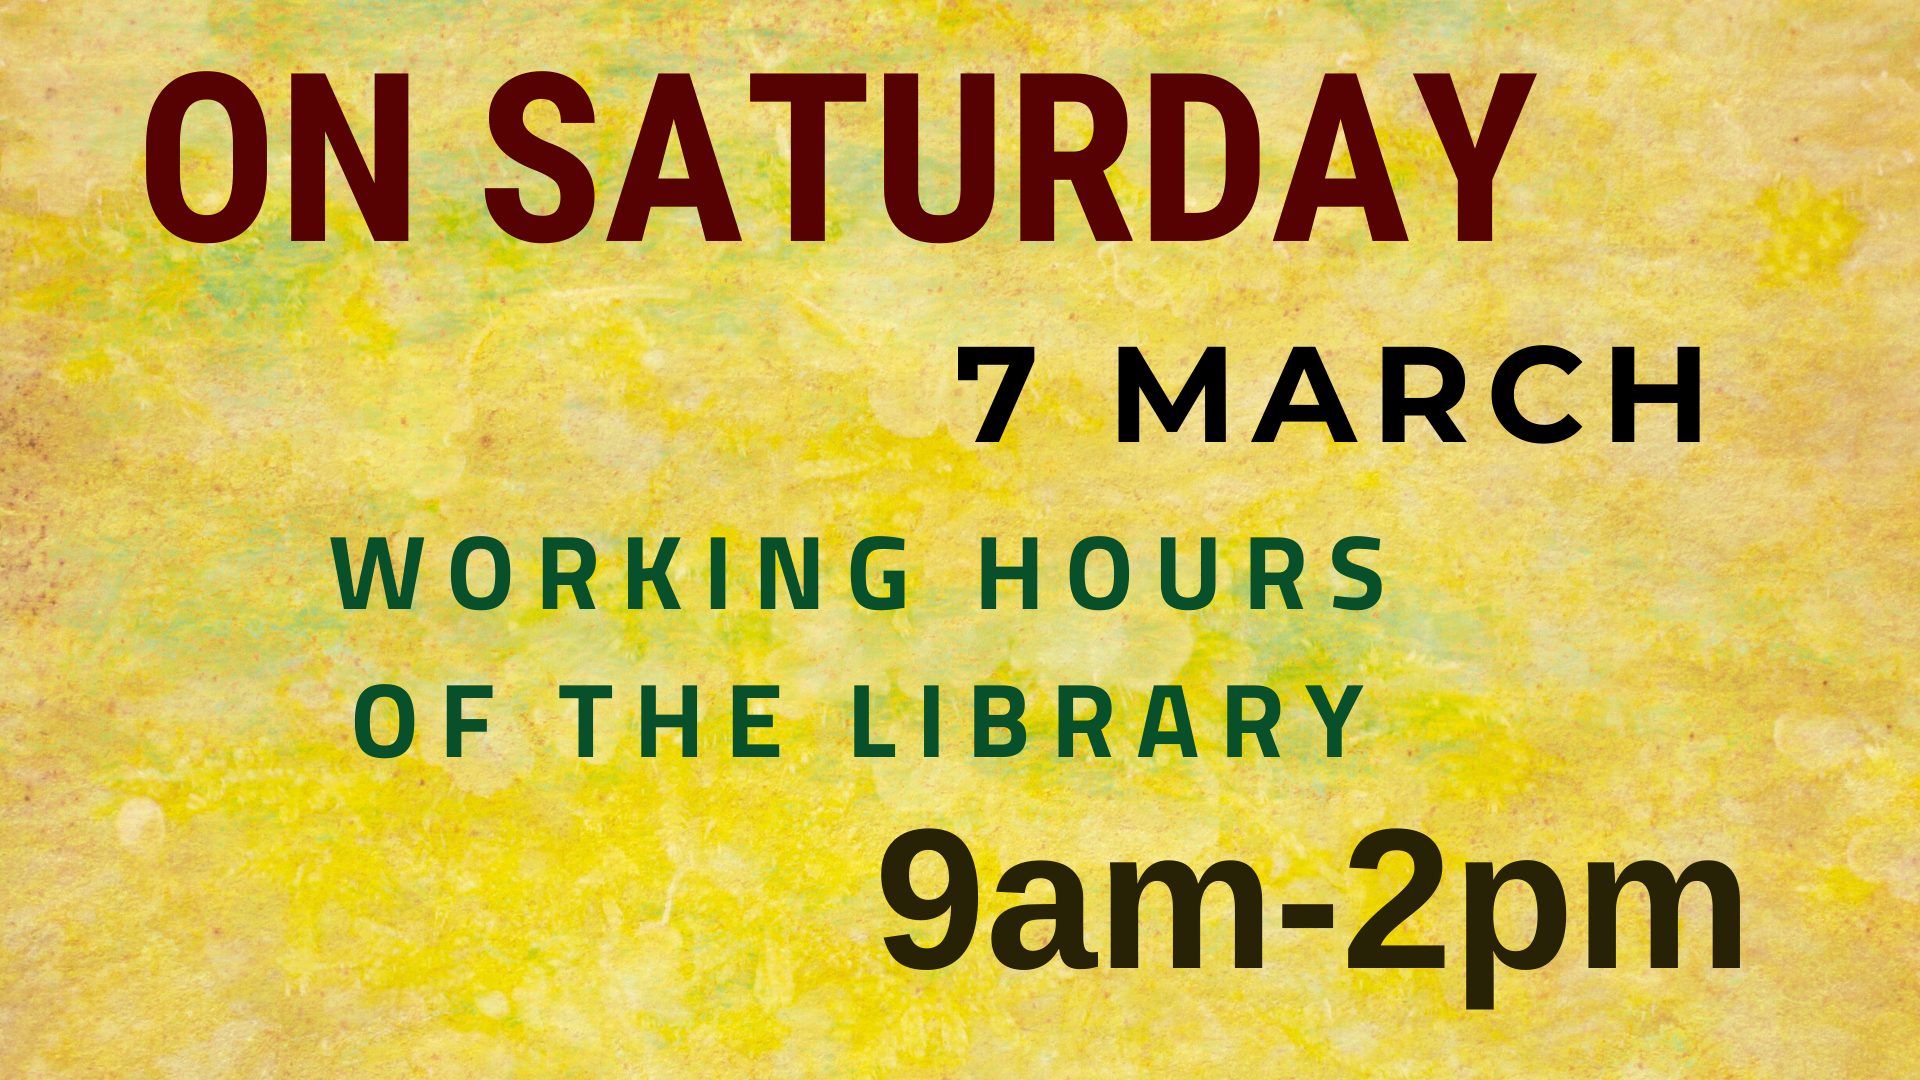 On Saturday 7 March our library is open from 9am until 2pm